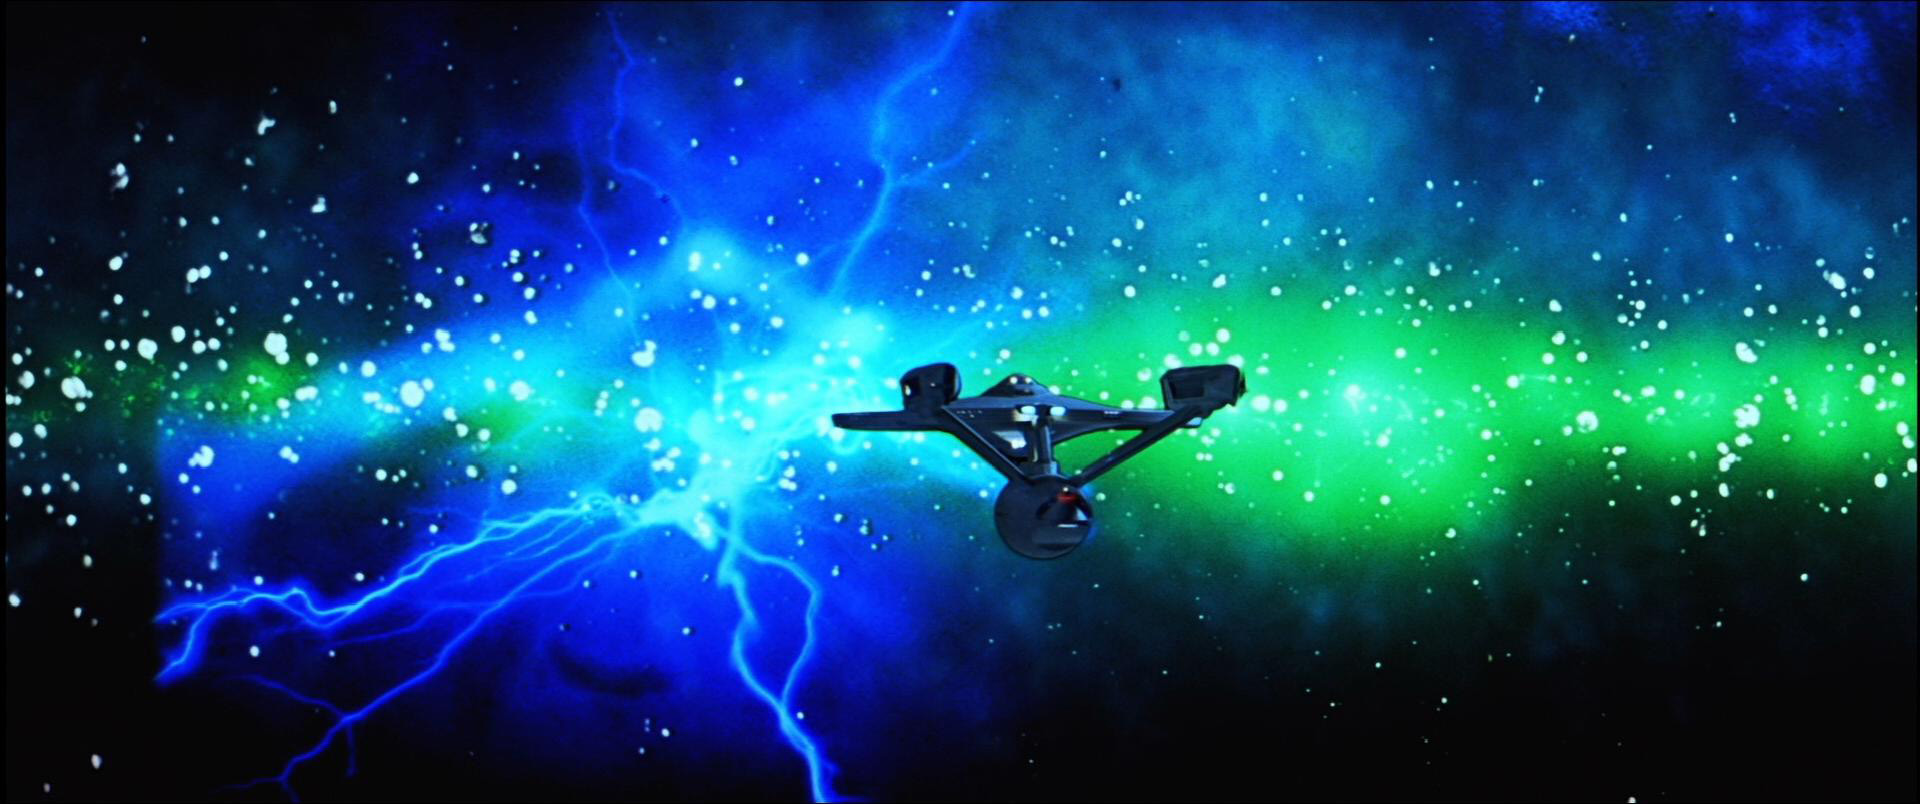 Star Trek V The Final Frontier Widescreen Edition Movie free download HD 720p